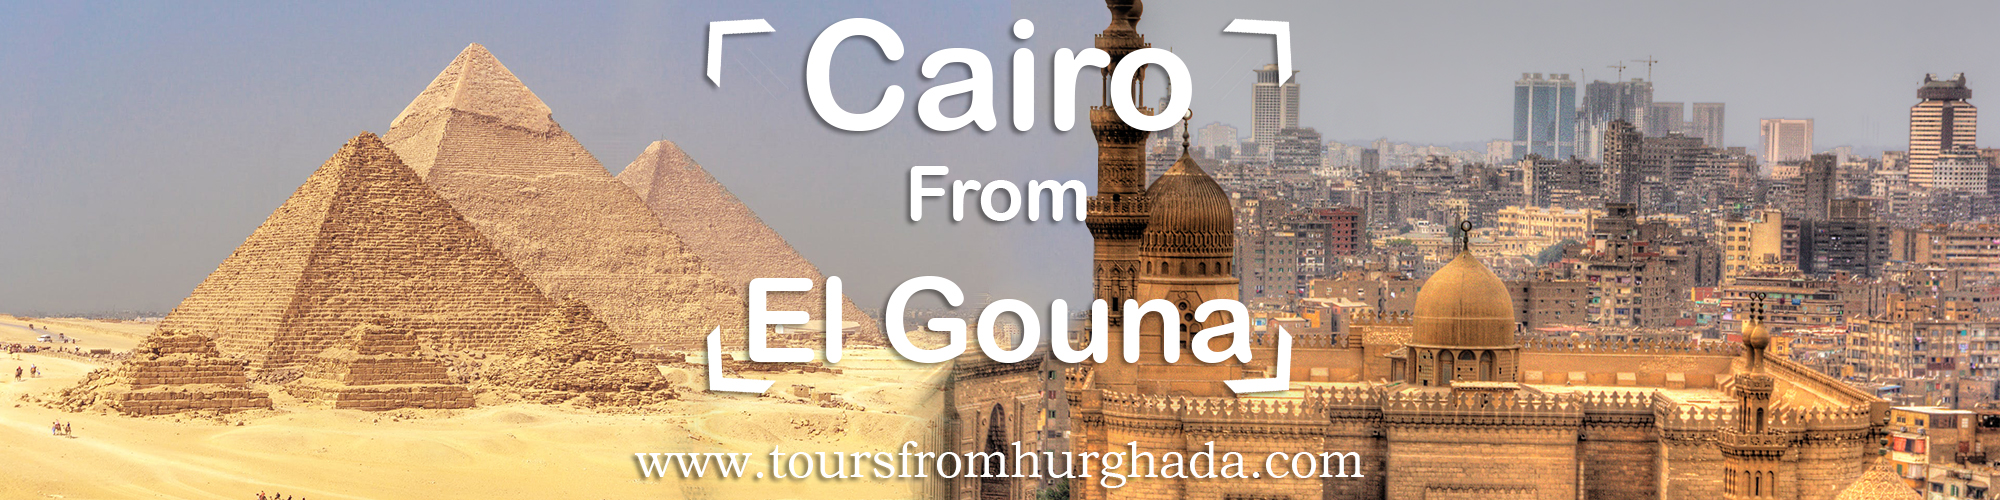 Cairo Tours From El Gouna ToursFromHurghada